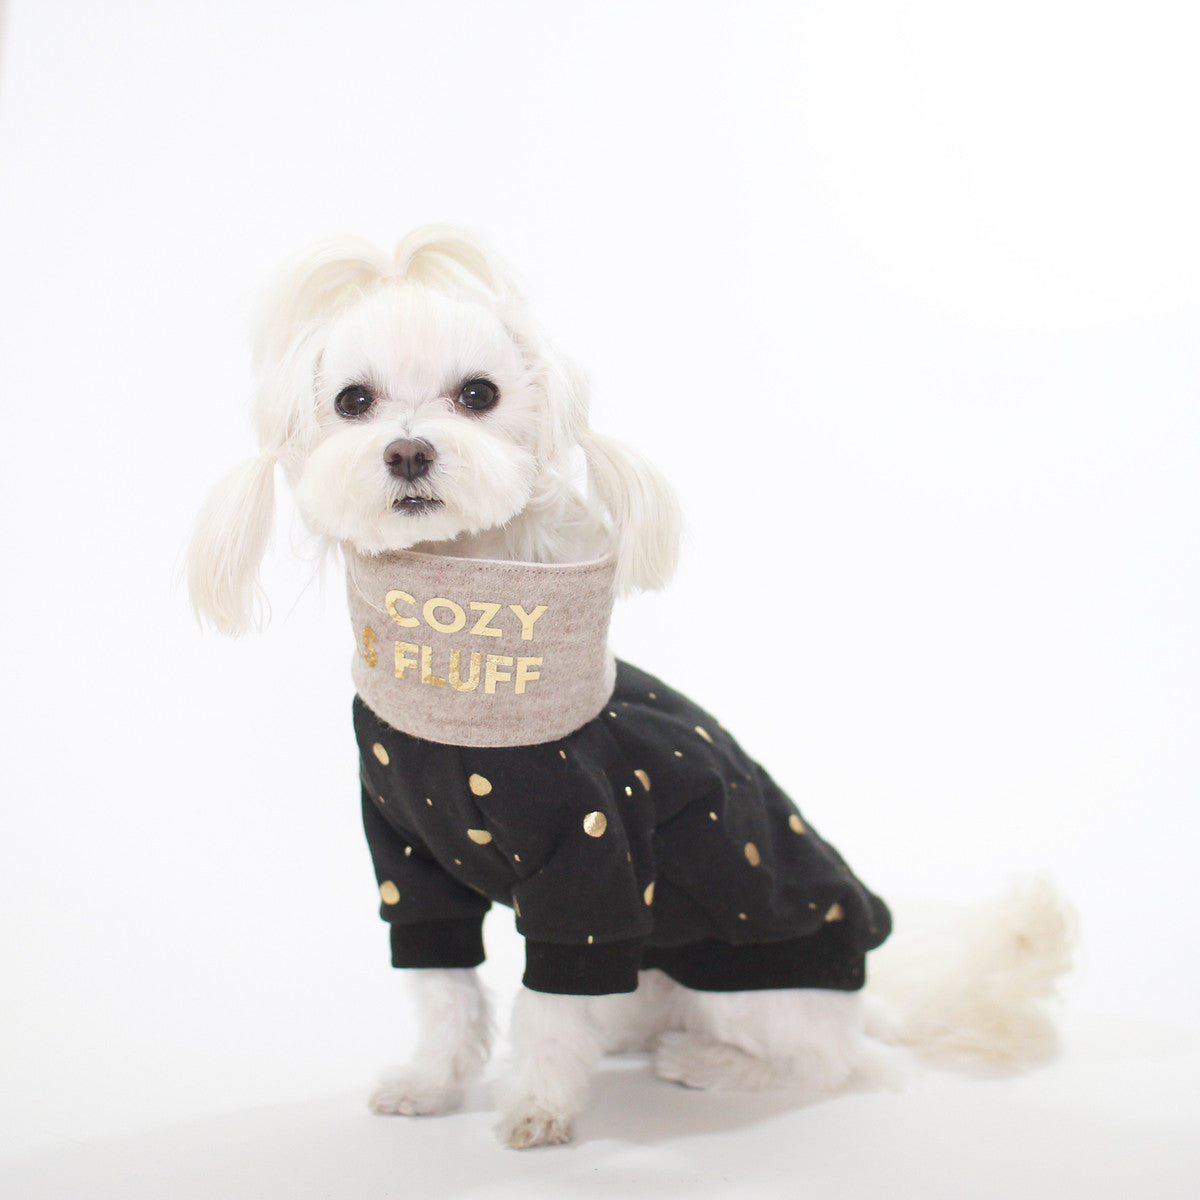 Wanderlust 'Cozy As Fluff' Scarf by Studio Eloise + LELE Collection - Elly for @Pawboutik